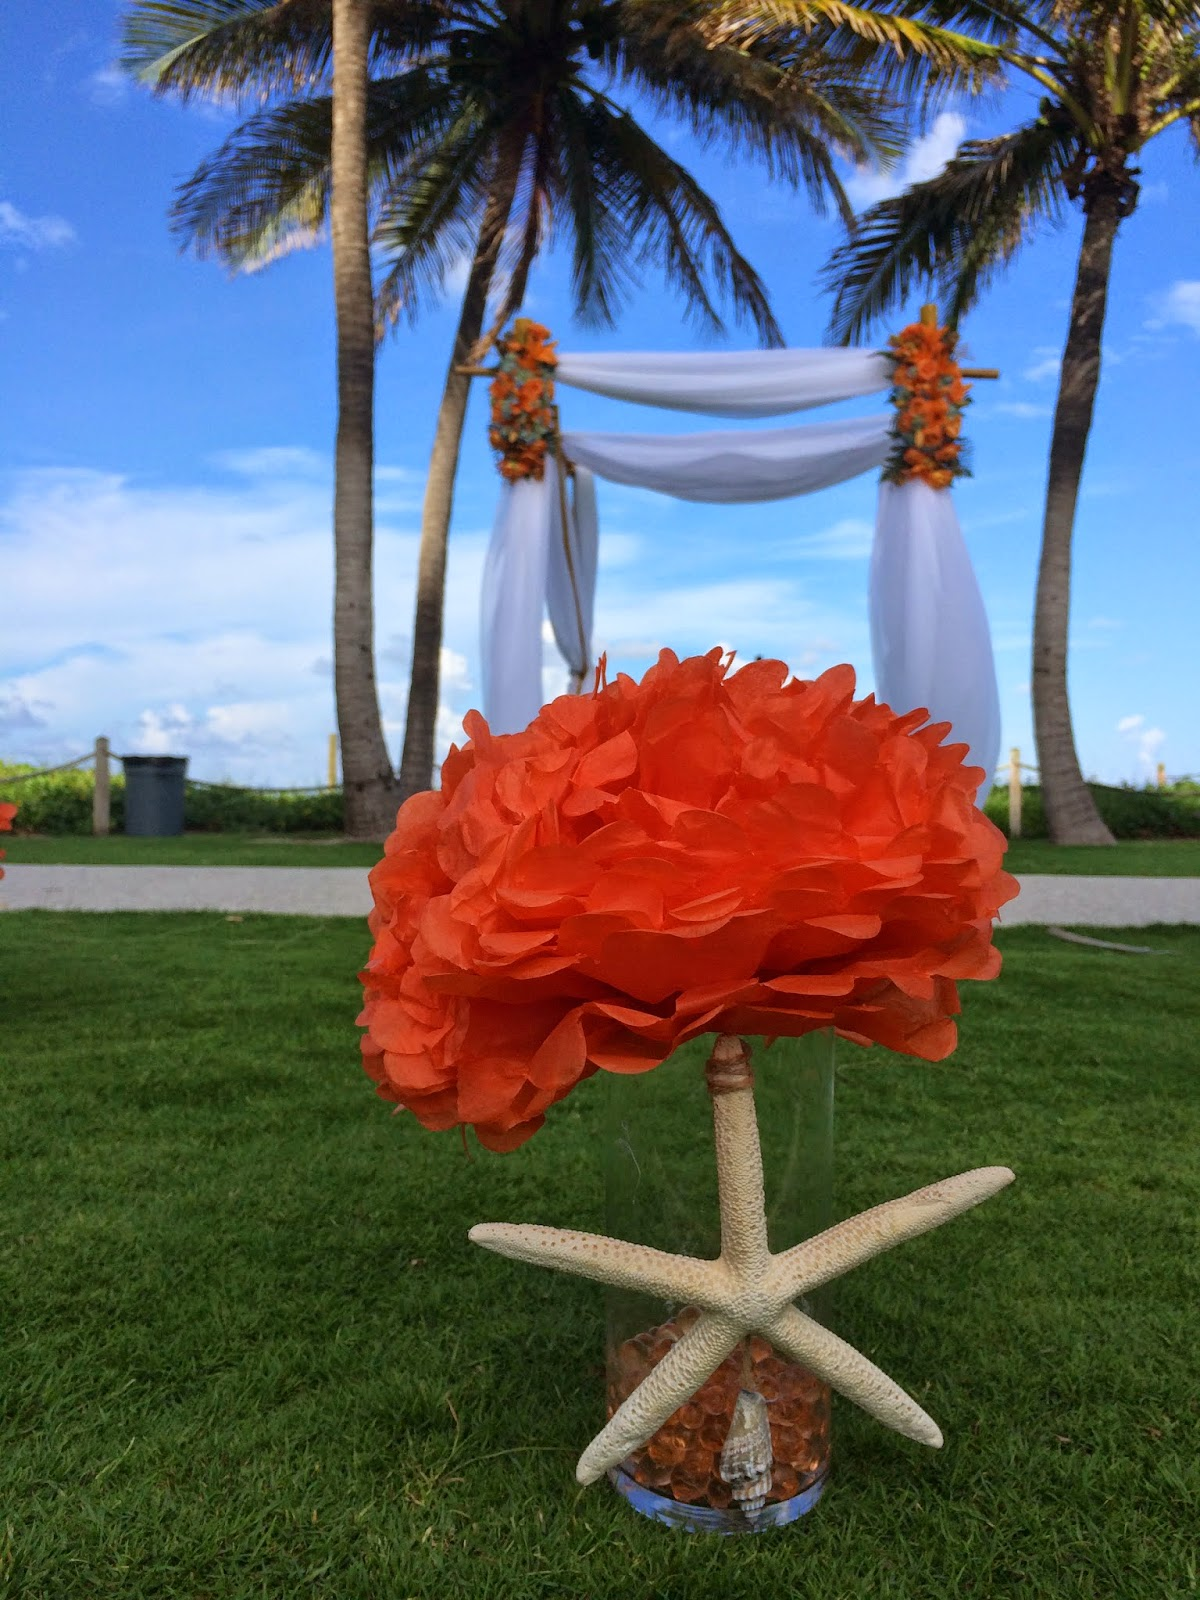 Beach wedding bamboo gazebo with flower and white folding chair